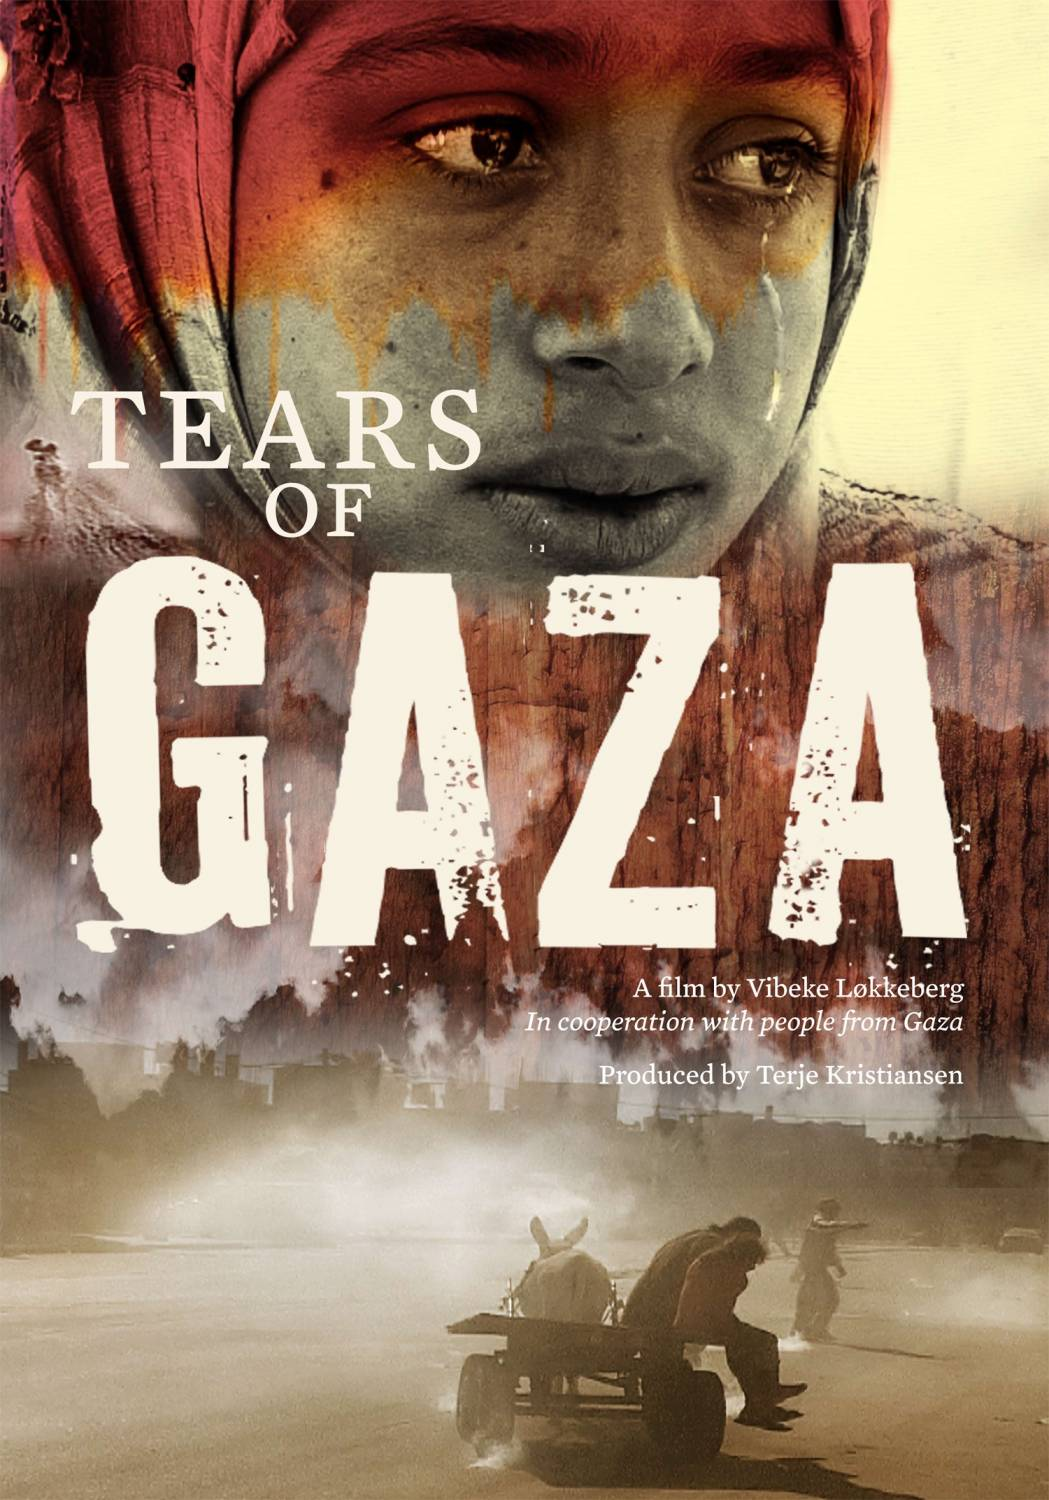 Слезы сектора Газа / Слезы Газы / Tears of Gaza (2010) DVDRip